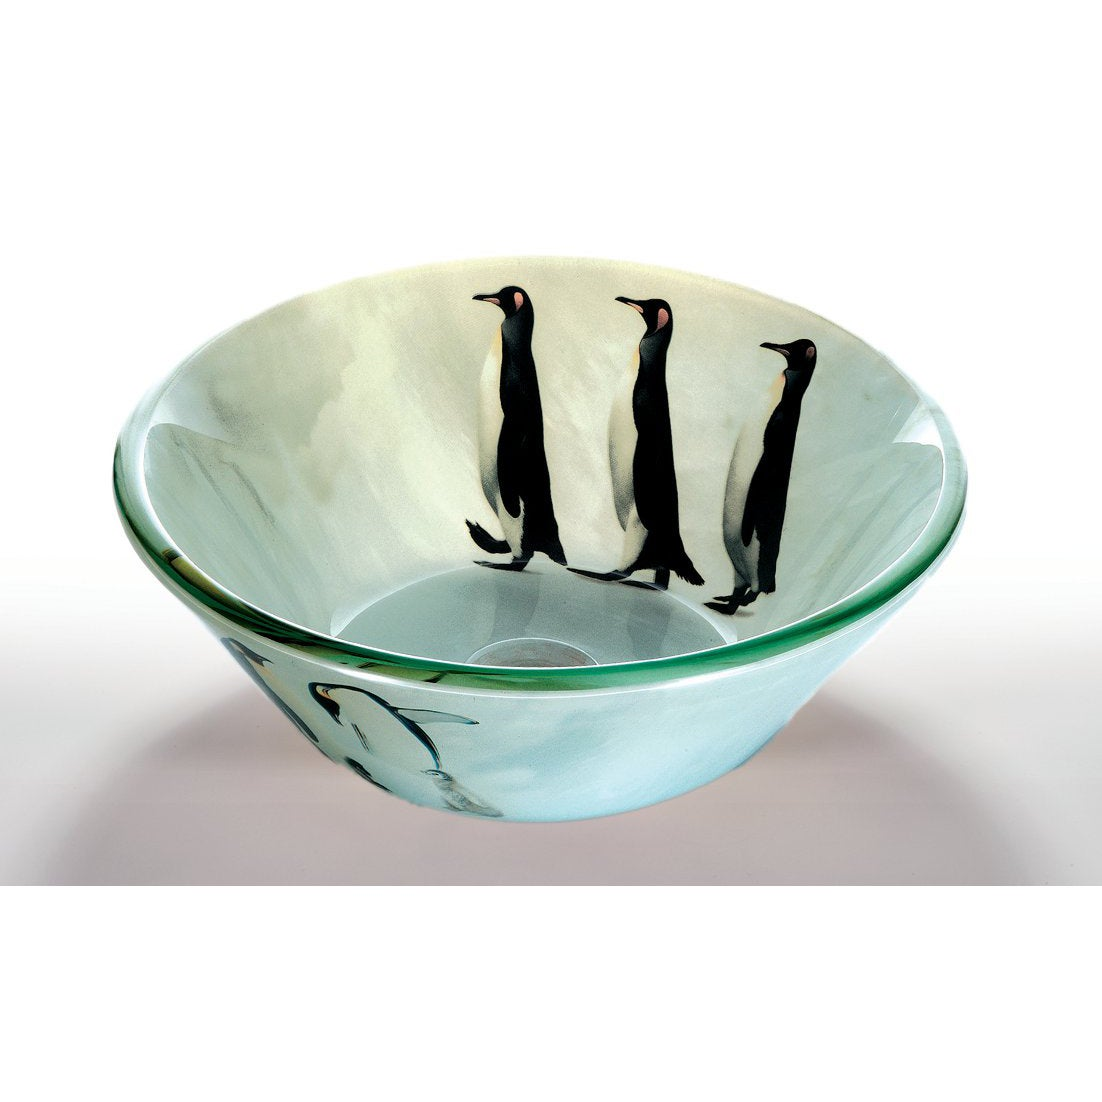 Glass Vessel Bowls : Penguin Glass Bowl Vessel Bathroom Sink - Free Shipping Today ...